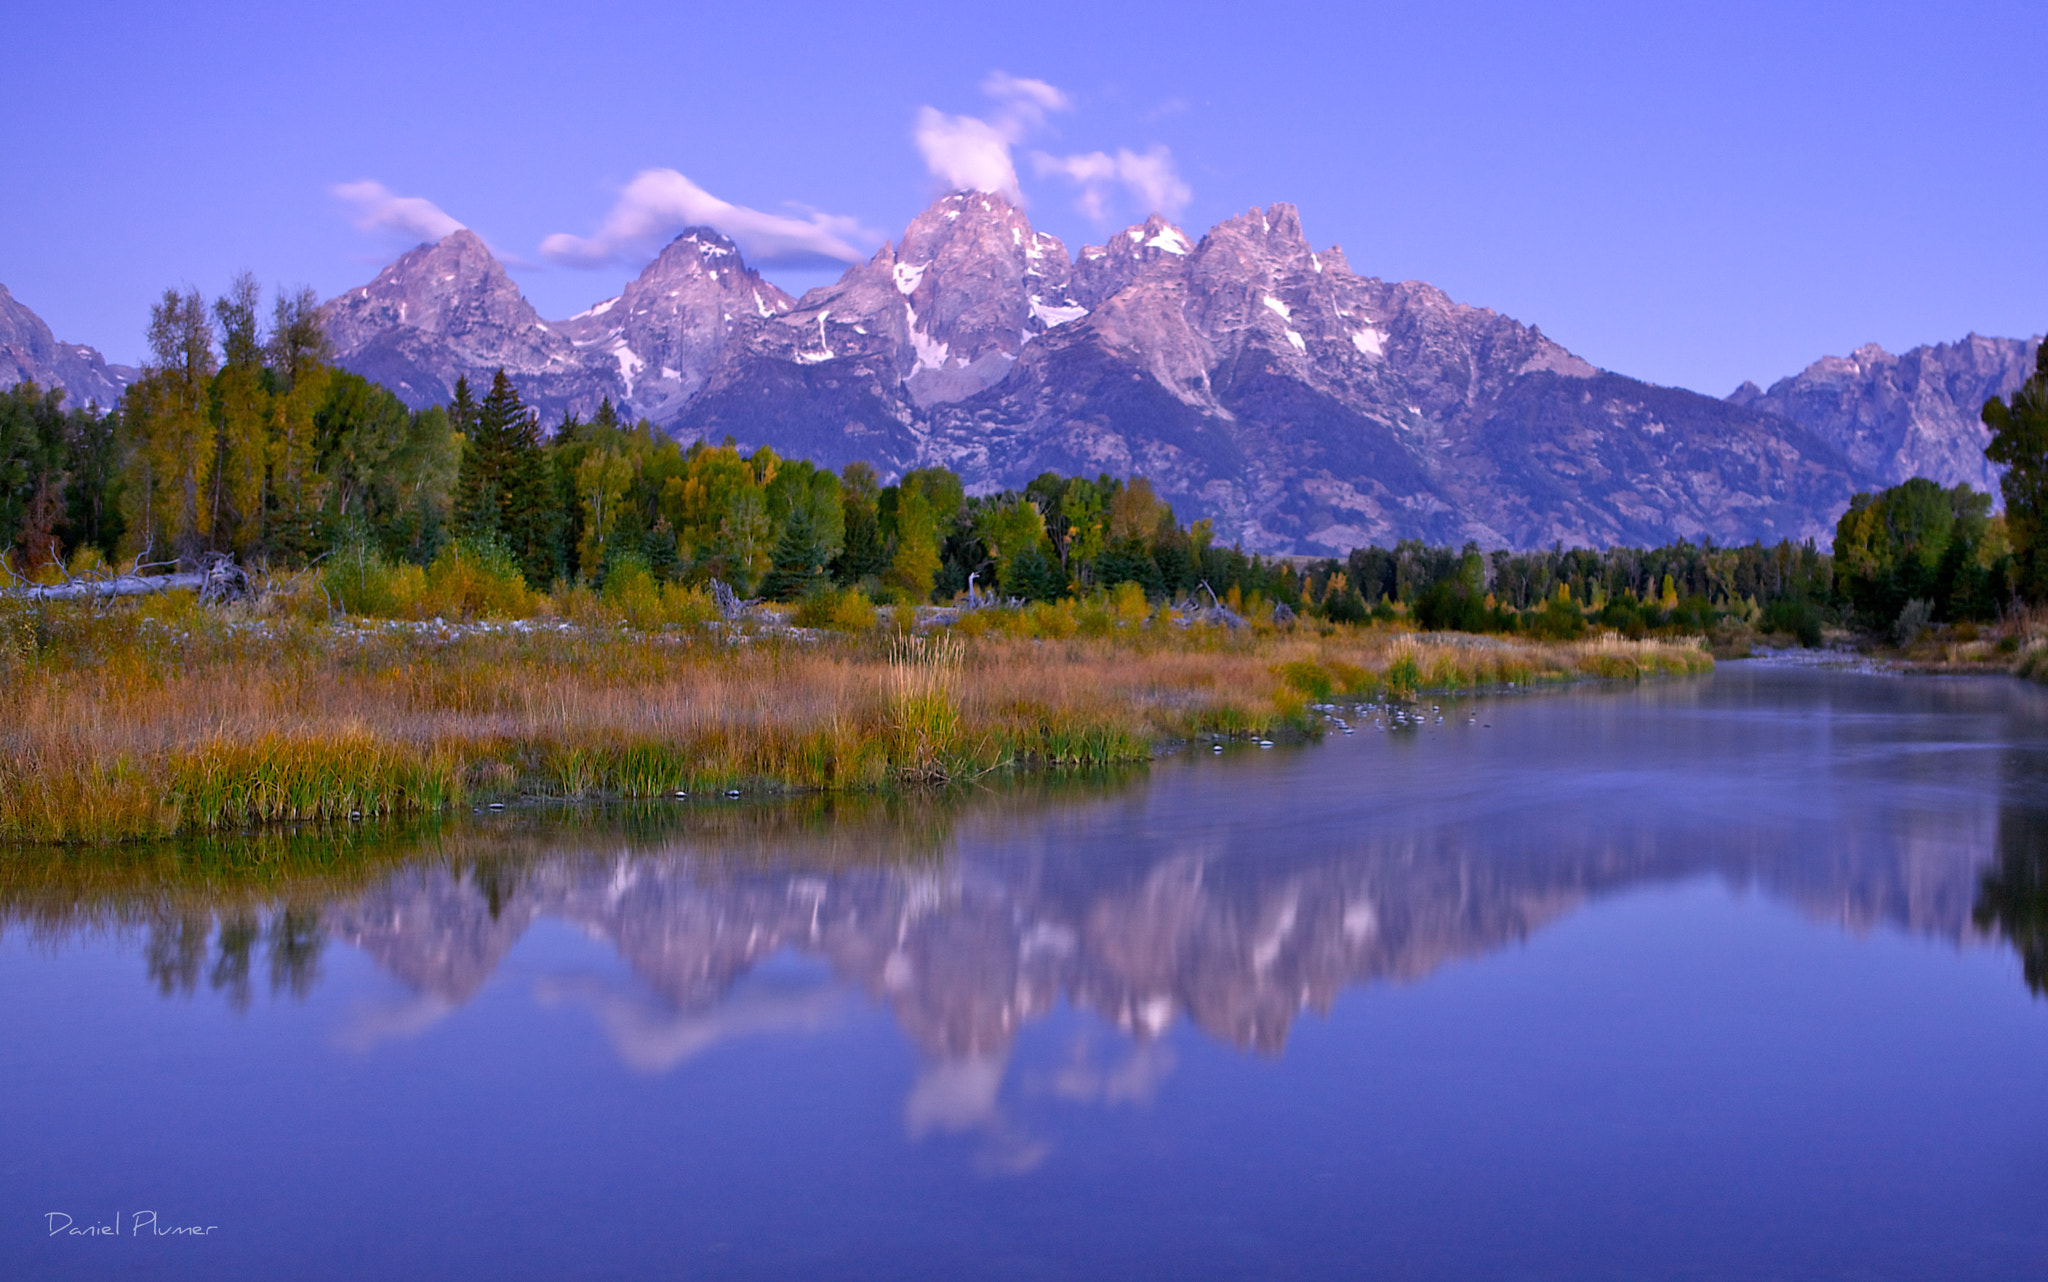 Photograph Moonlit Tetons by Daniel Plumer on 500px